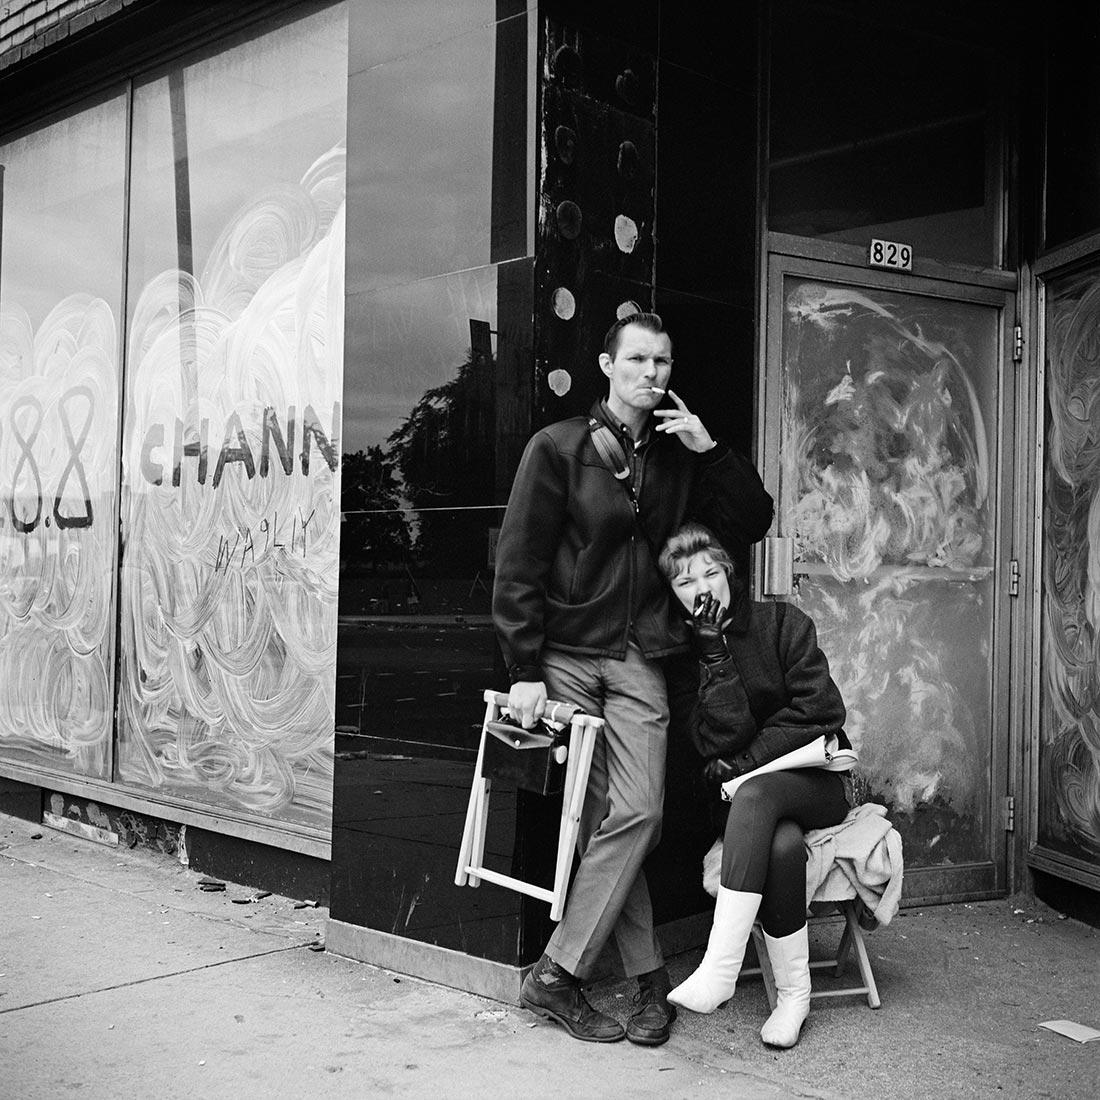 Milwaukee, Wisconsin (Vivian Maier)